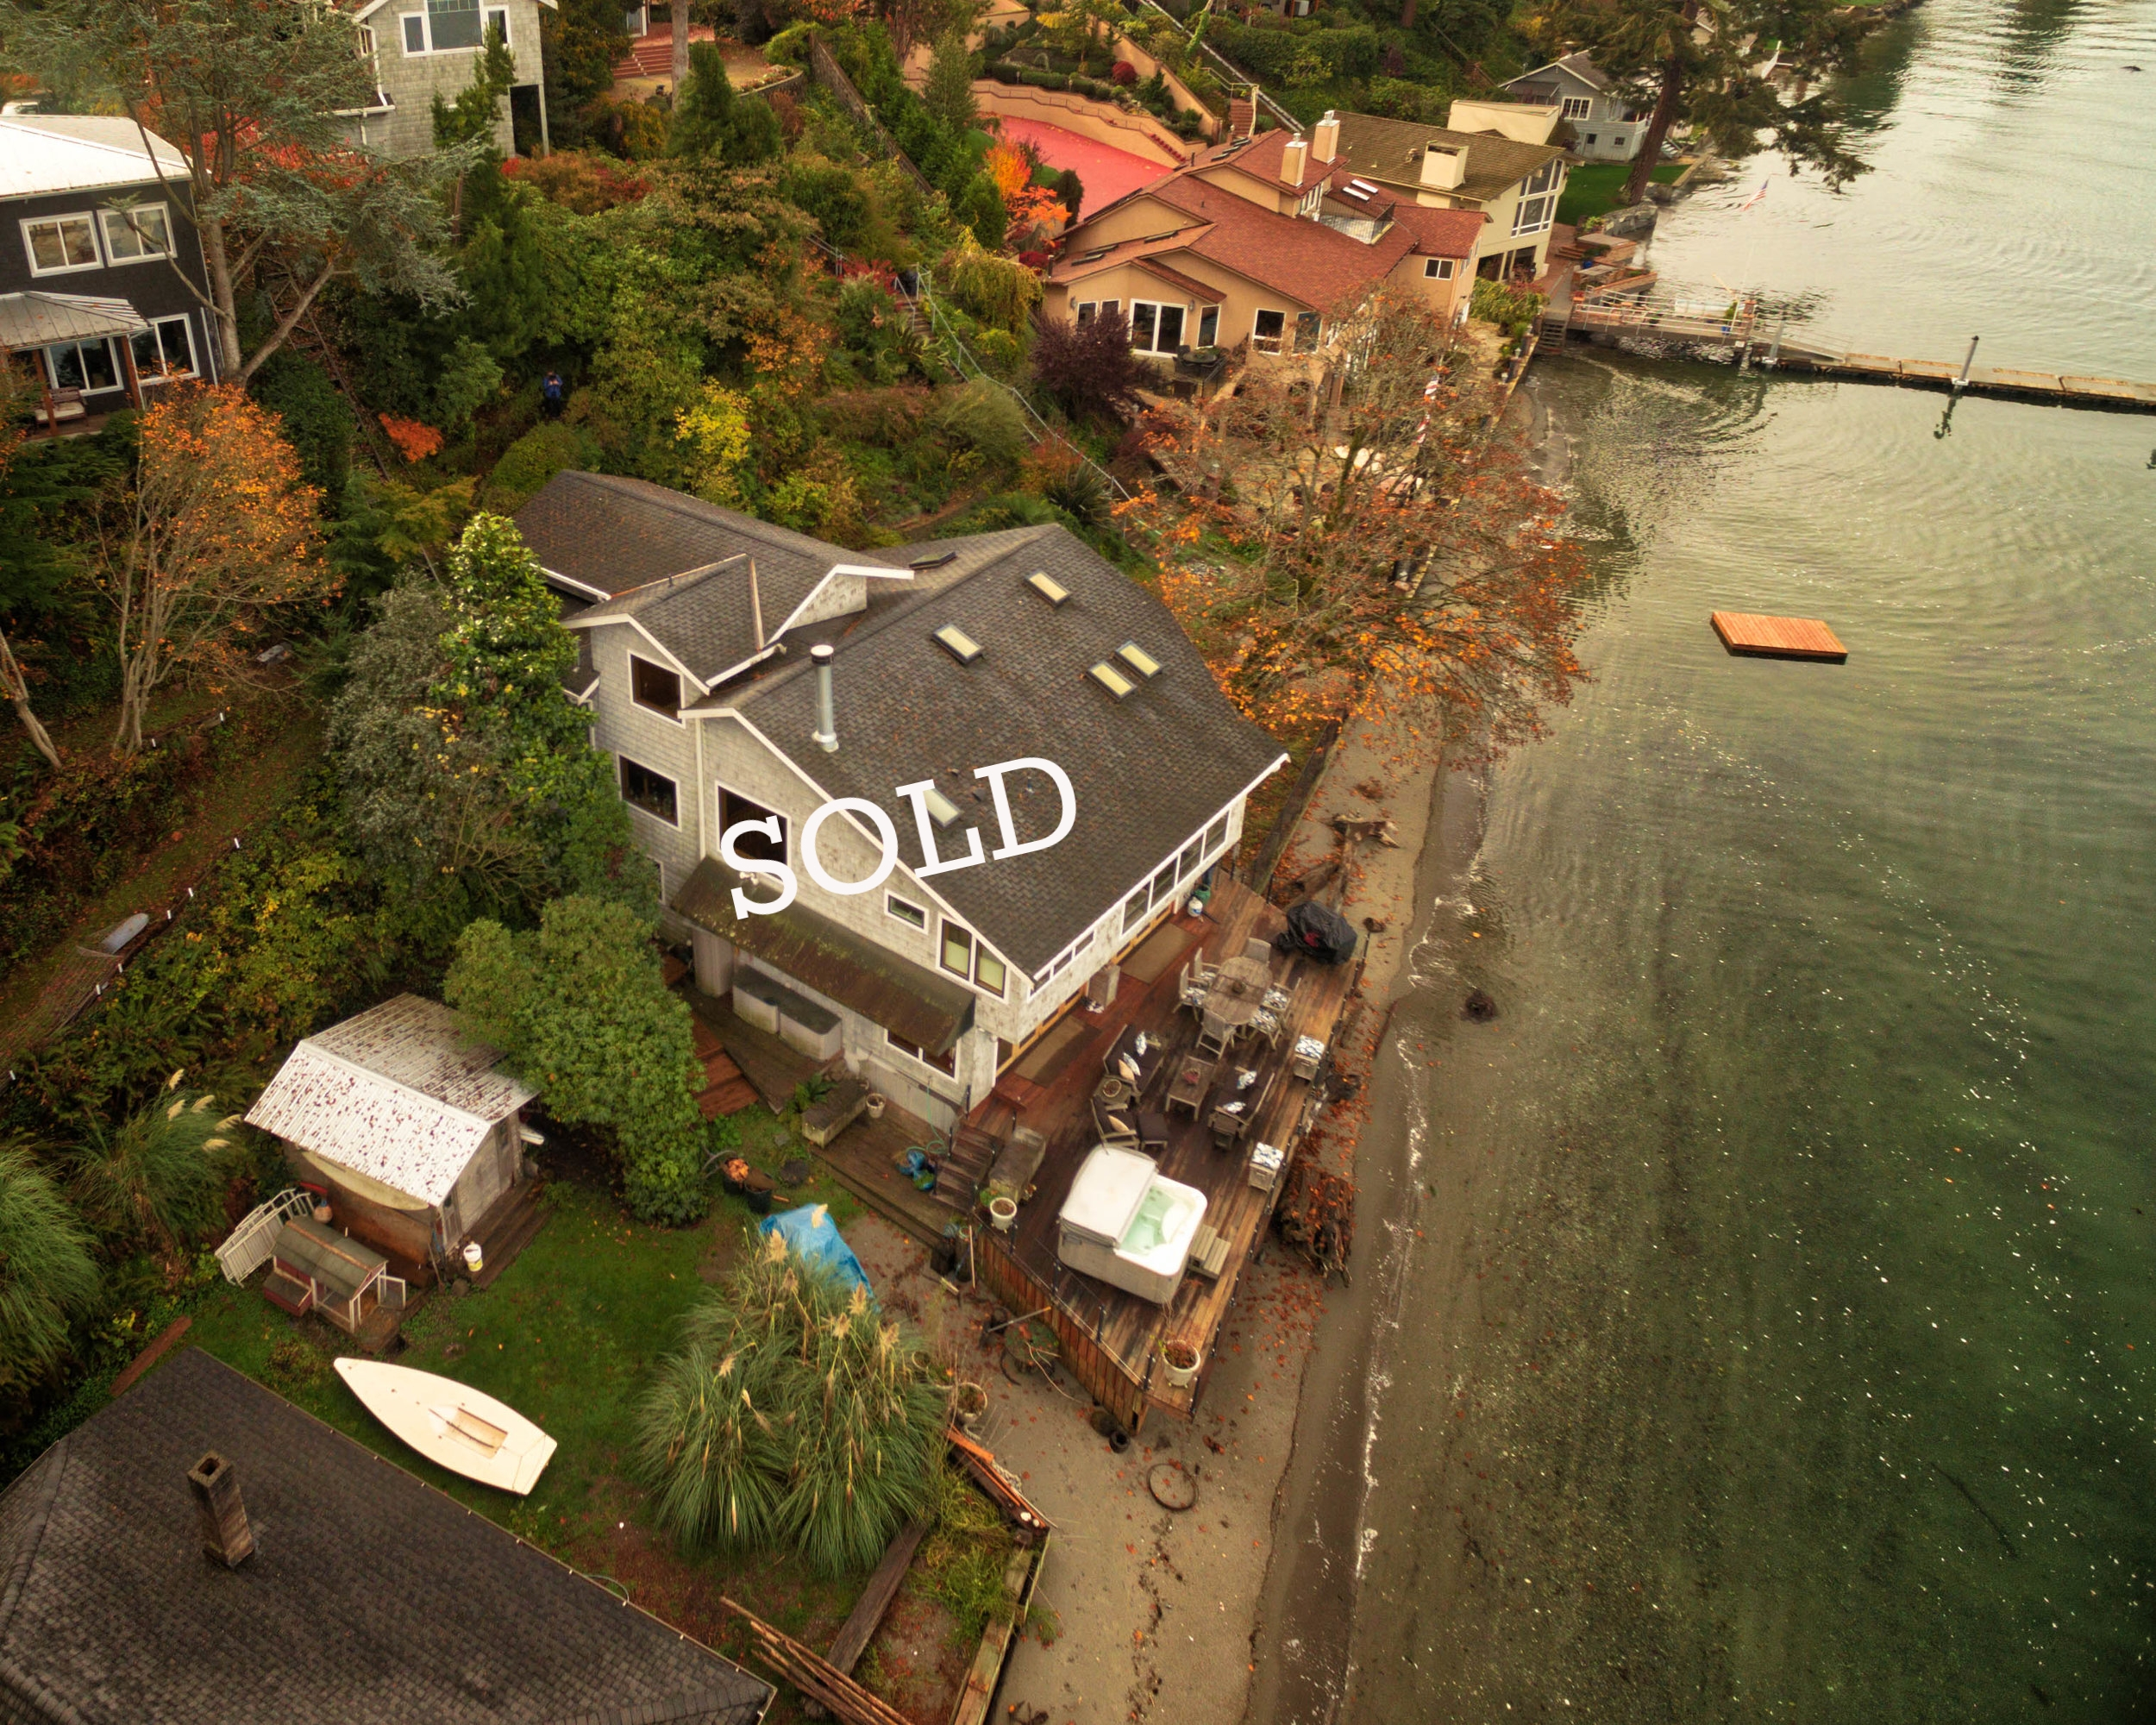 Redondo Beach, Washington - This beautiful waterfront home is equipped with an elevator to transport you from the deck to the upper landing where your vehicle awaits.